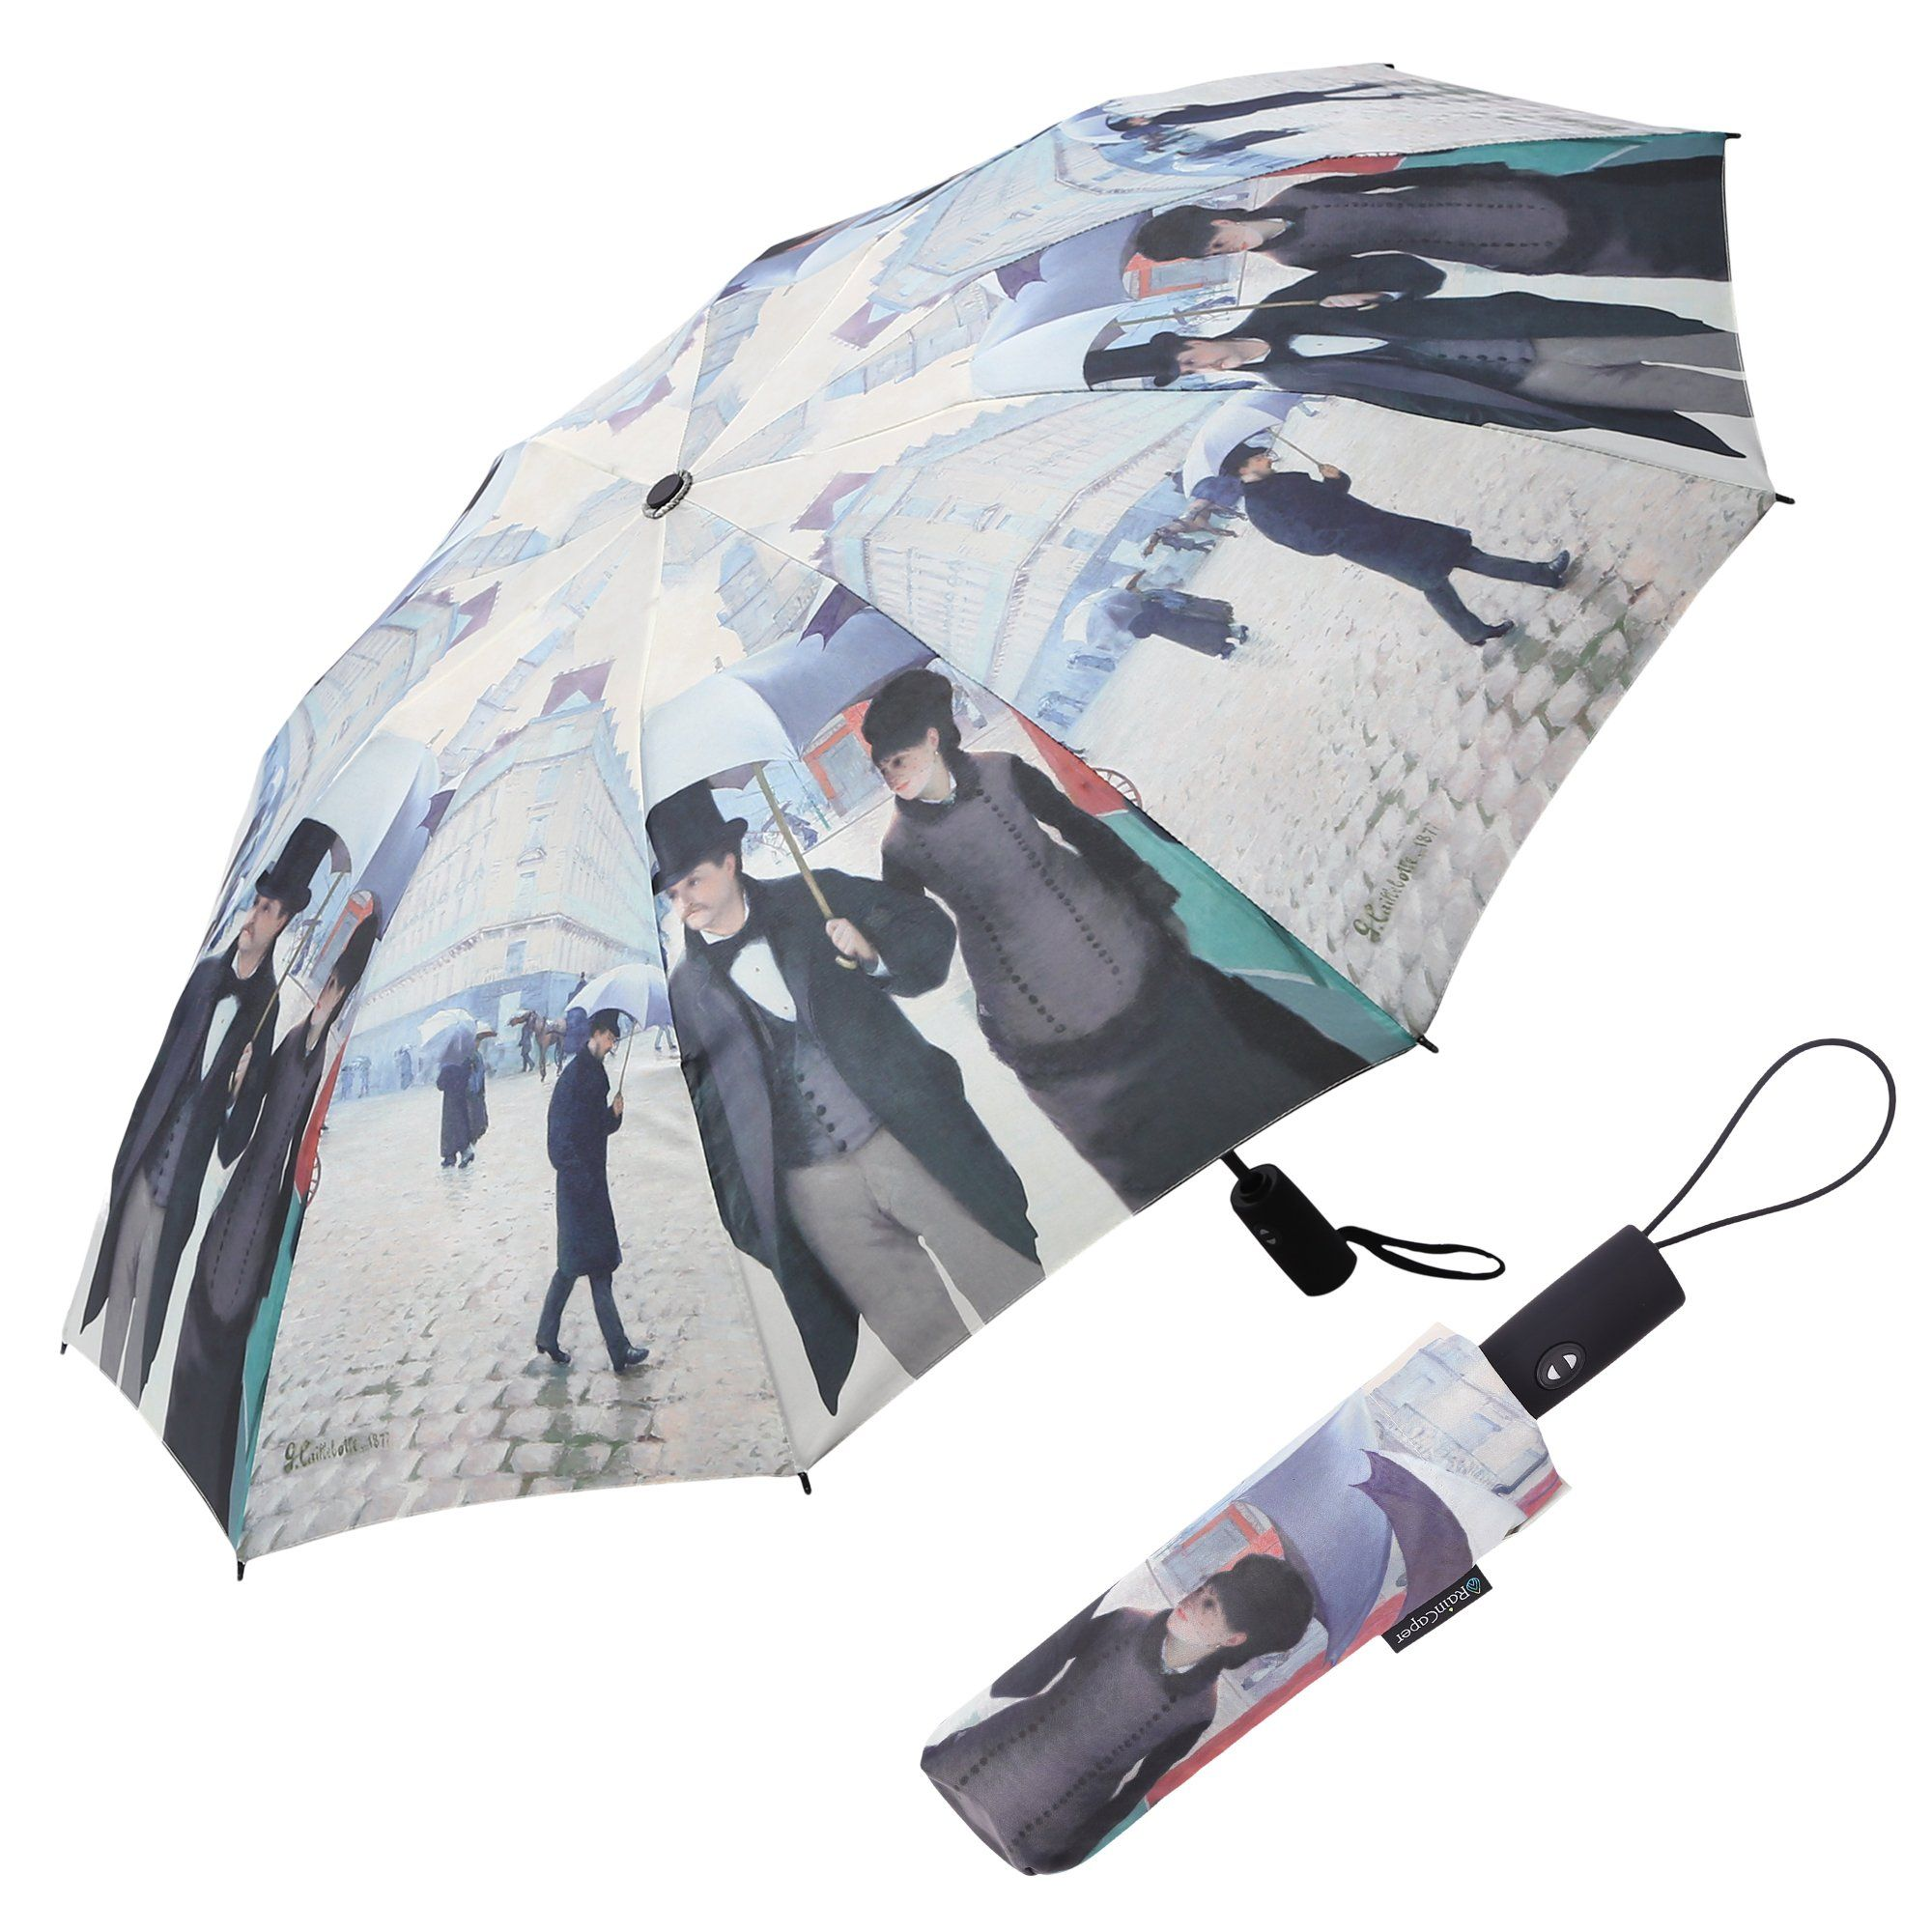 Image of a RainCaper Caillebotte Paris Street folded traveling umbrella shown both open and closed